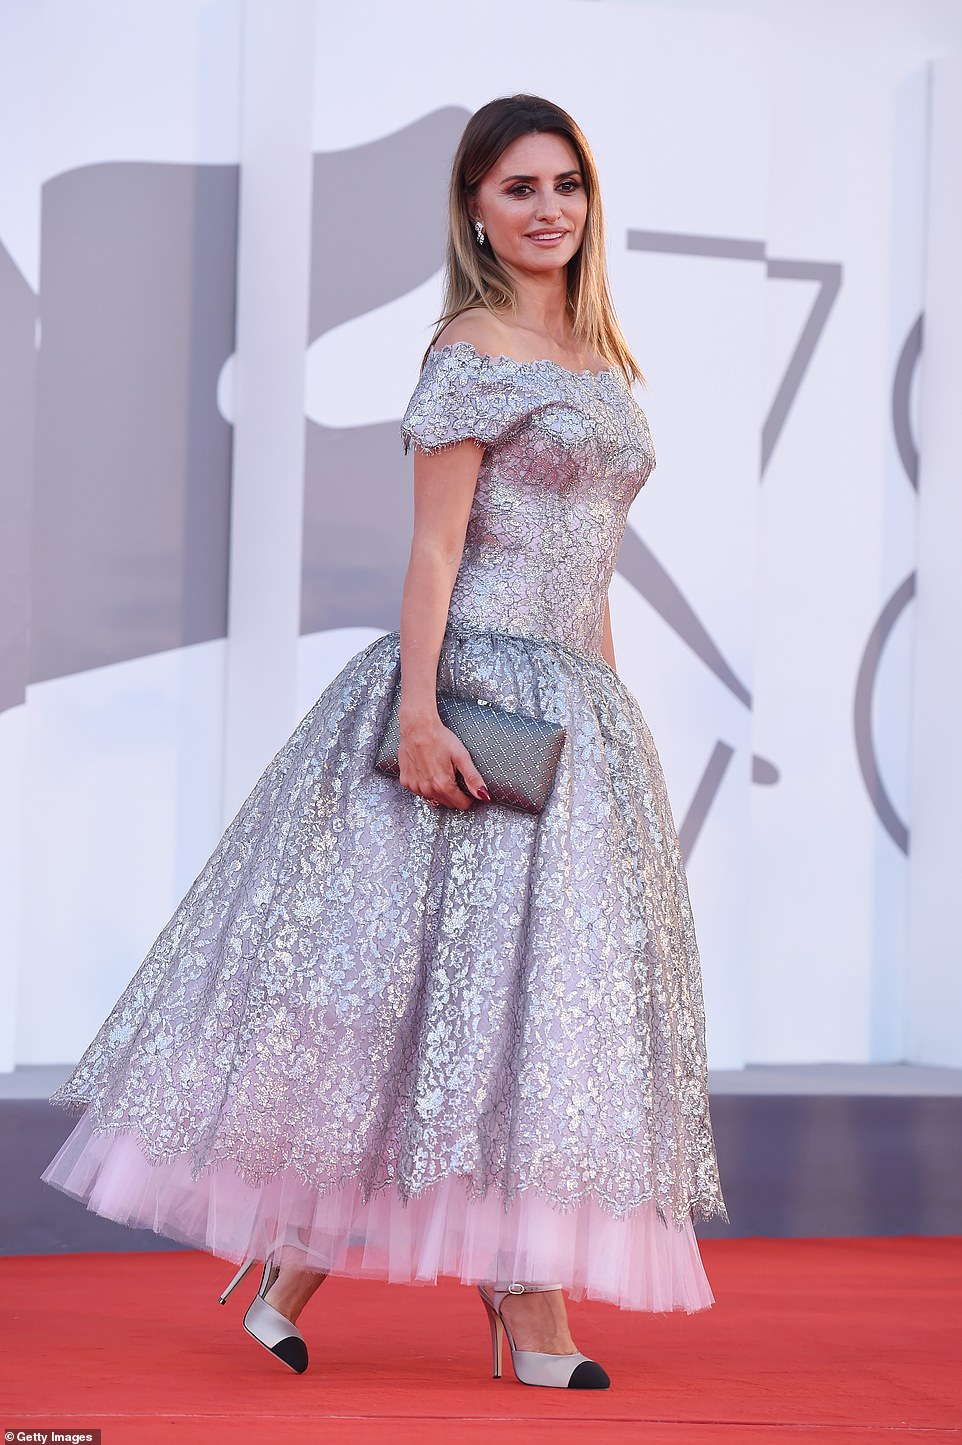 A vision:The Vanilla Sky actress, 47, stunned in a shimmering silver off-the shoulder gown as she posed for the cameras on the final day of the annual event